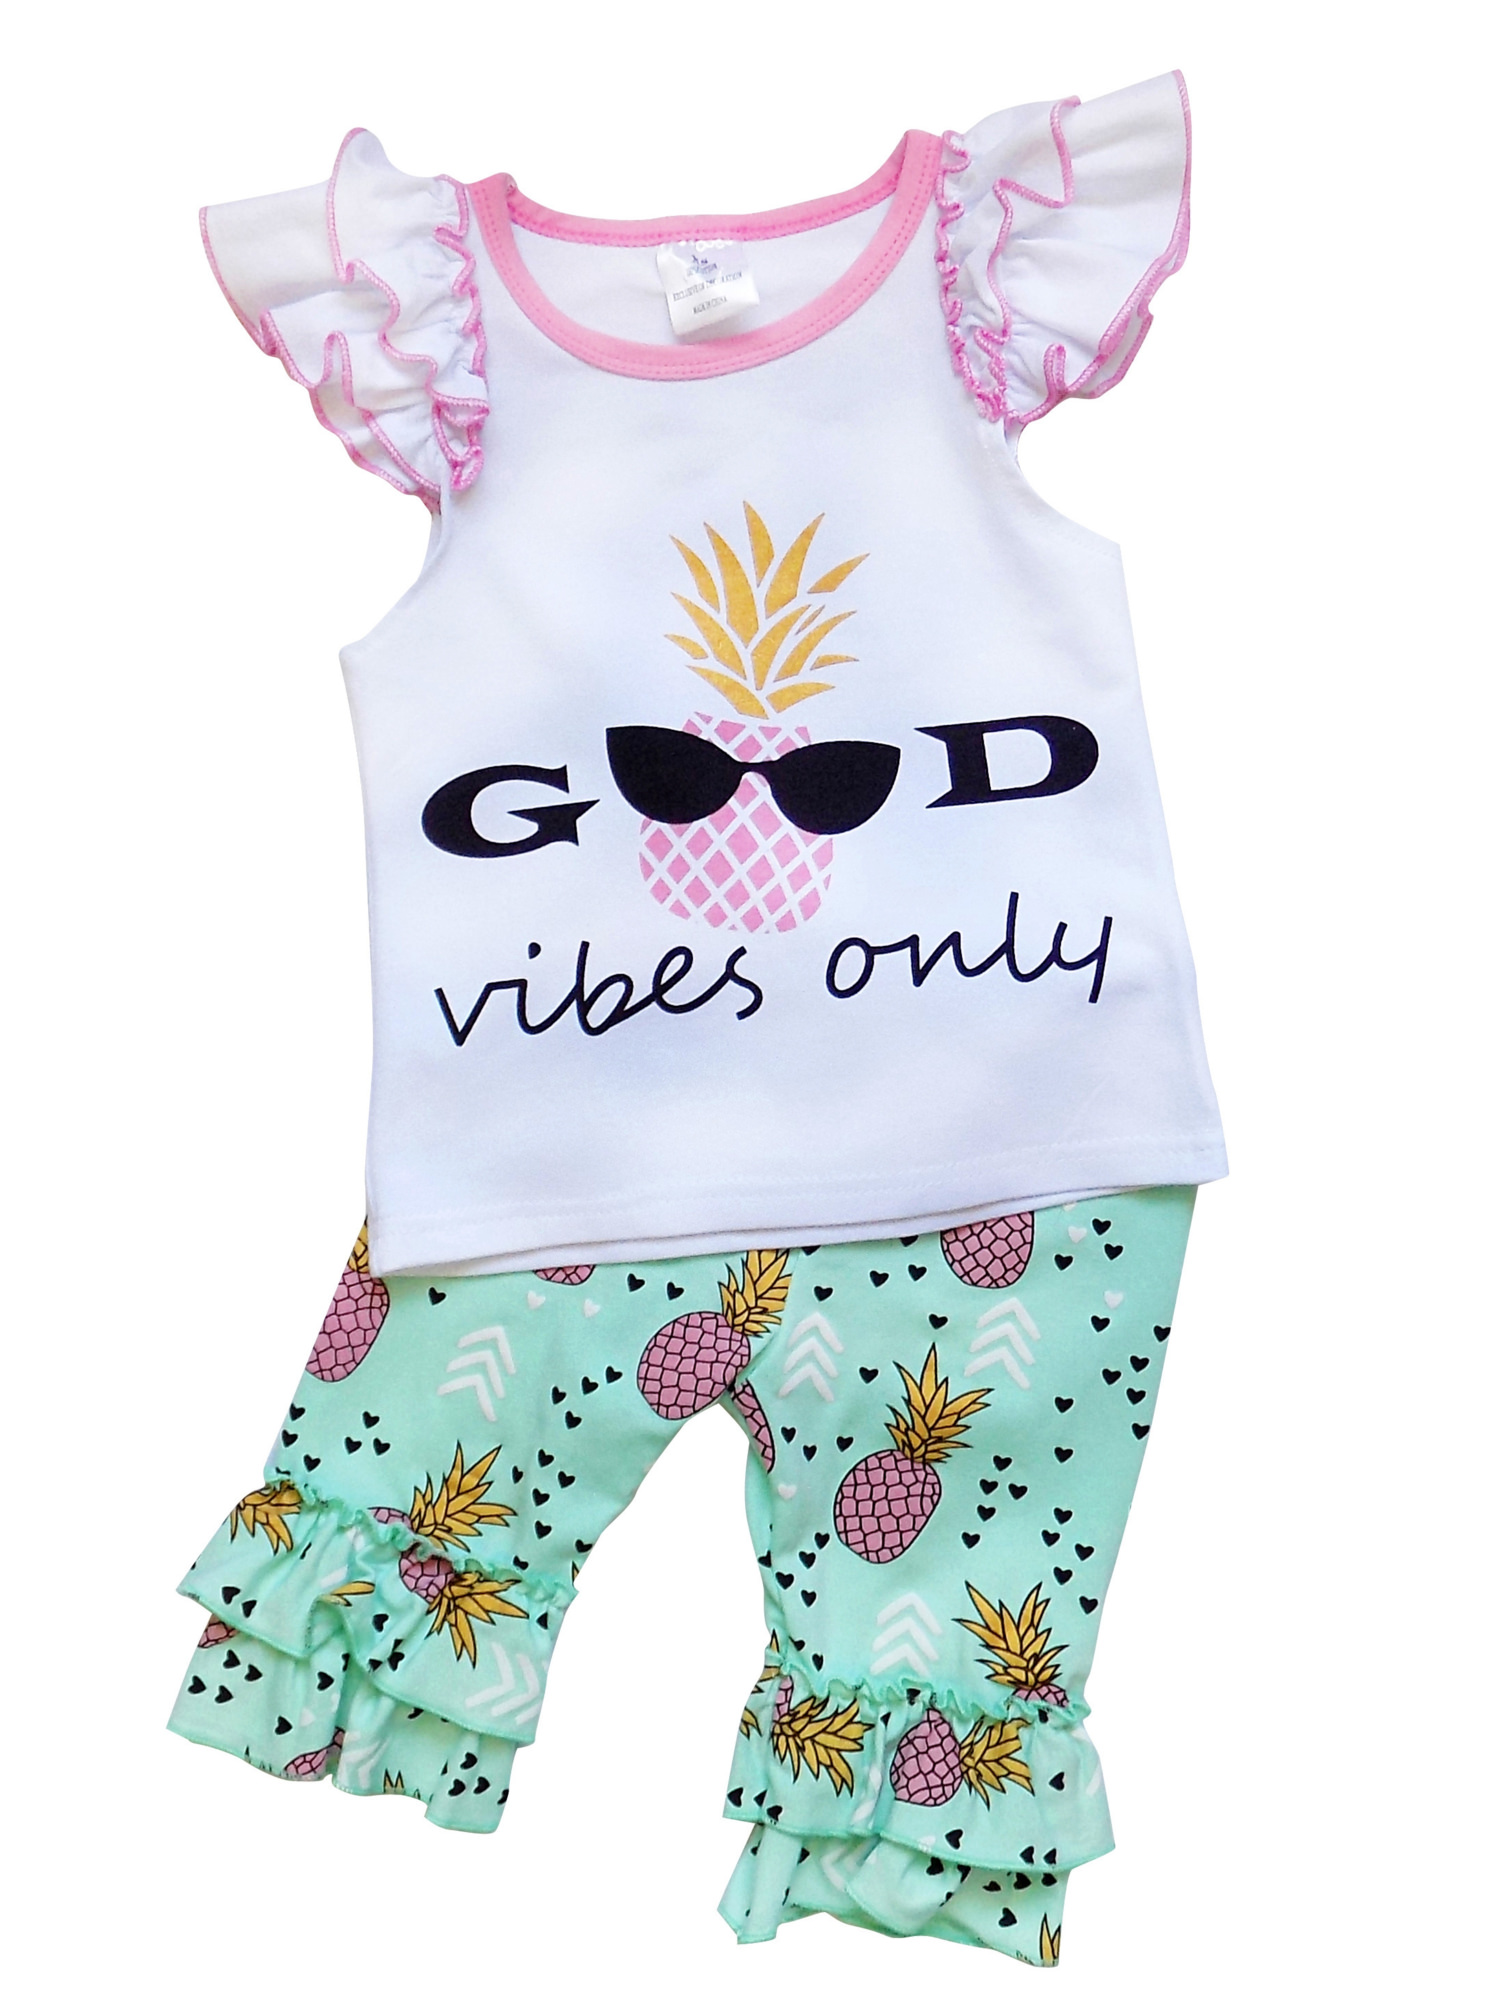 So Sydney Girls Toddler Deluxe Novelty Ruffle Summer Boutique Shorts Outfit